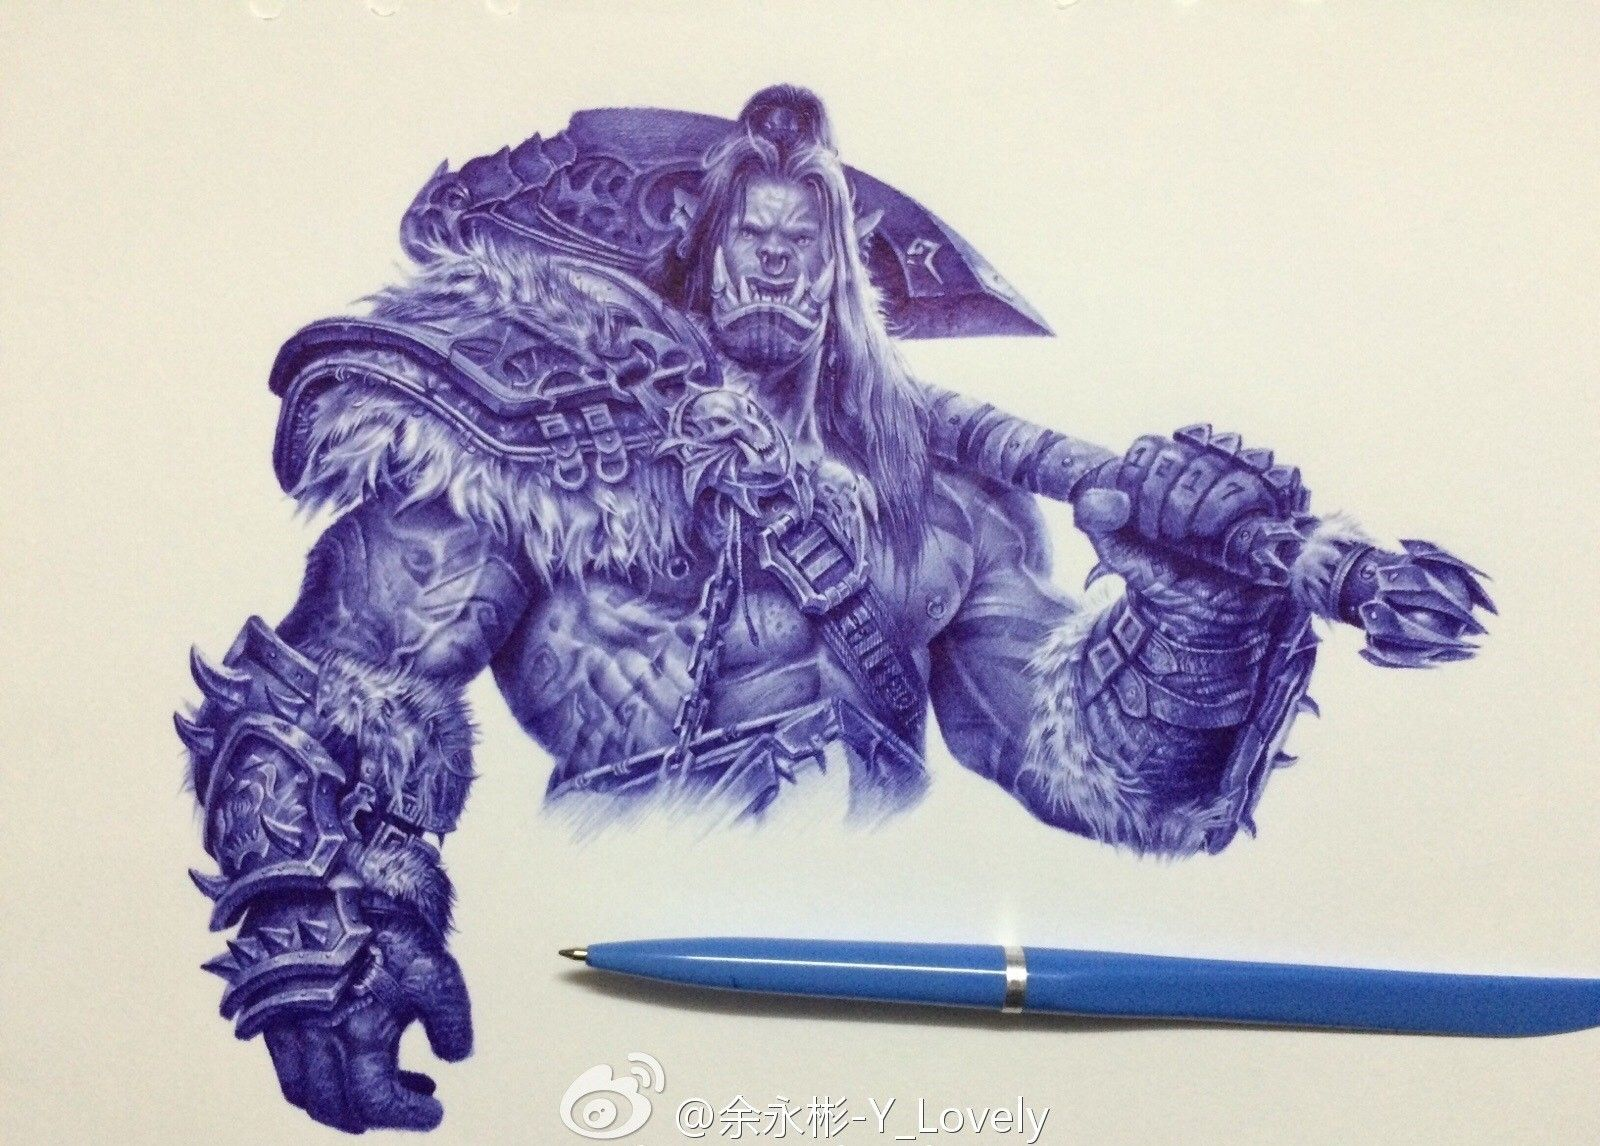 Check out the Epic World of Warcraft Fan Art Drawn by Ballpoint ...